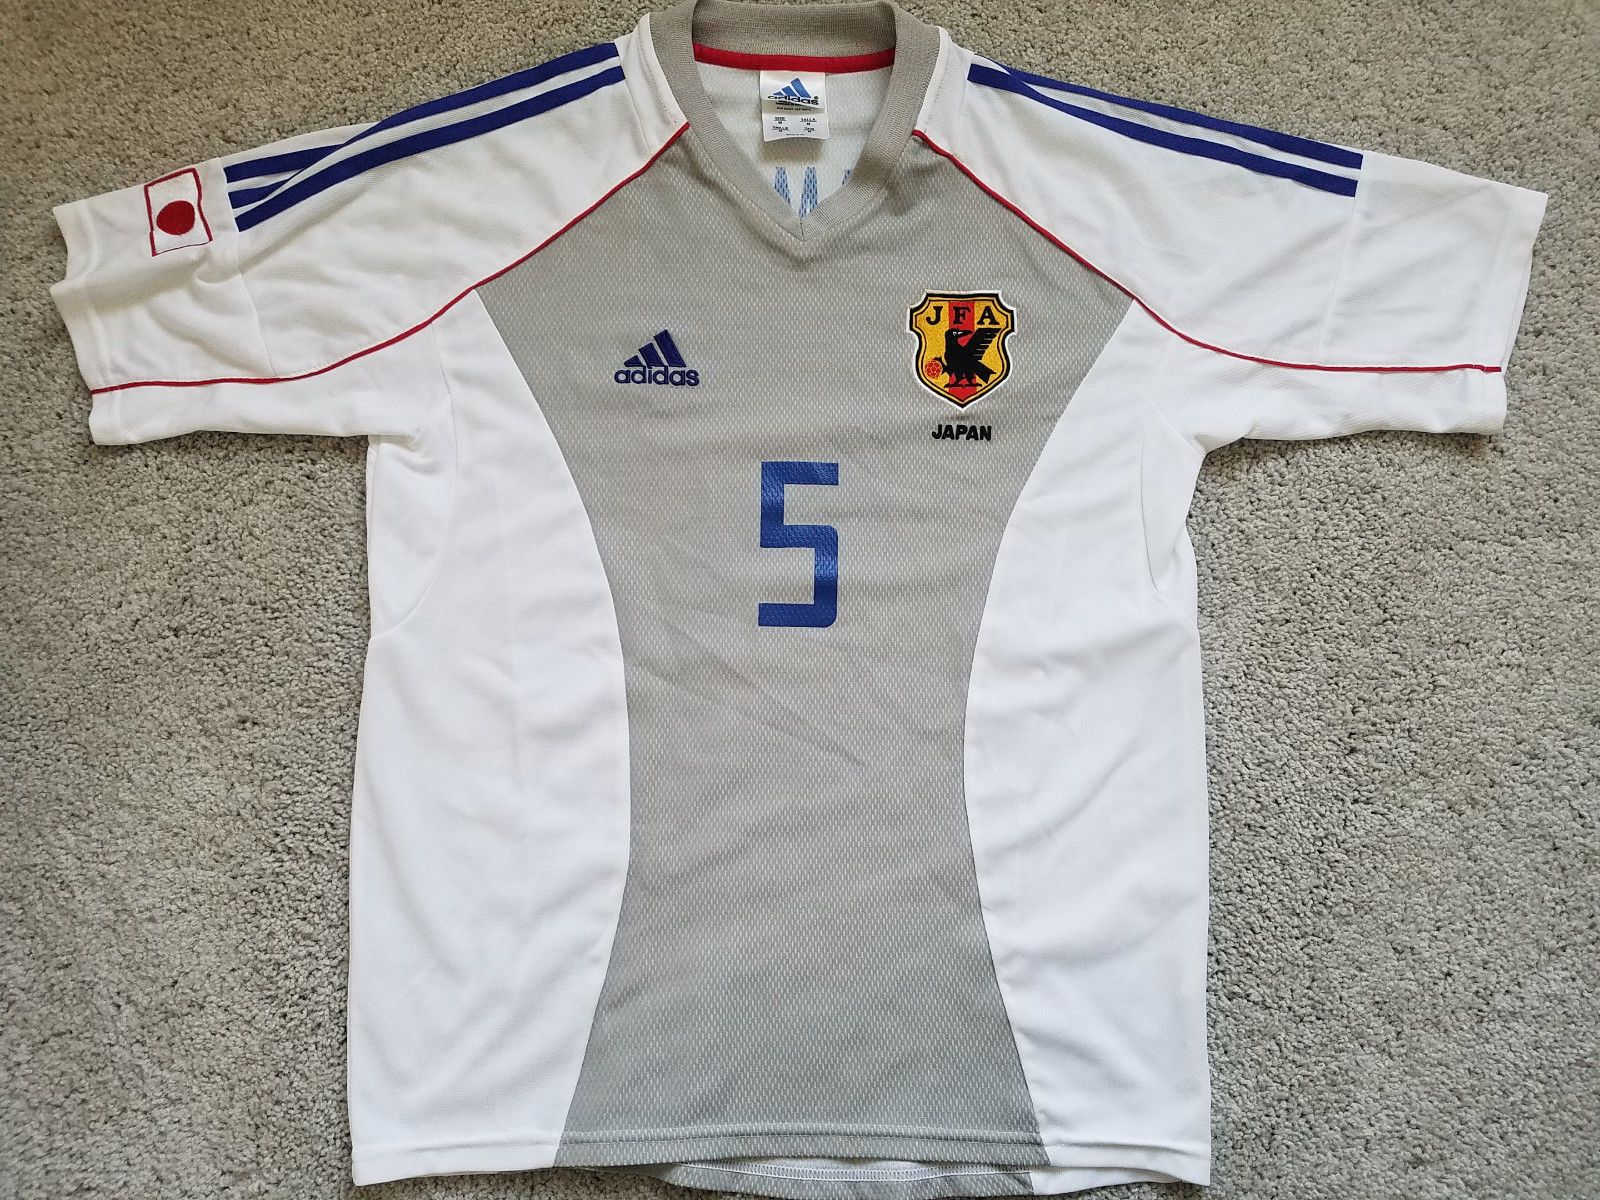 Classic 2002 World Cup Japan Away Jersey Soccer Kit Inamoto Size M Ebay Link Soccer Kits 2002 World Cup Jersey